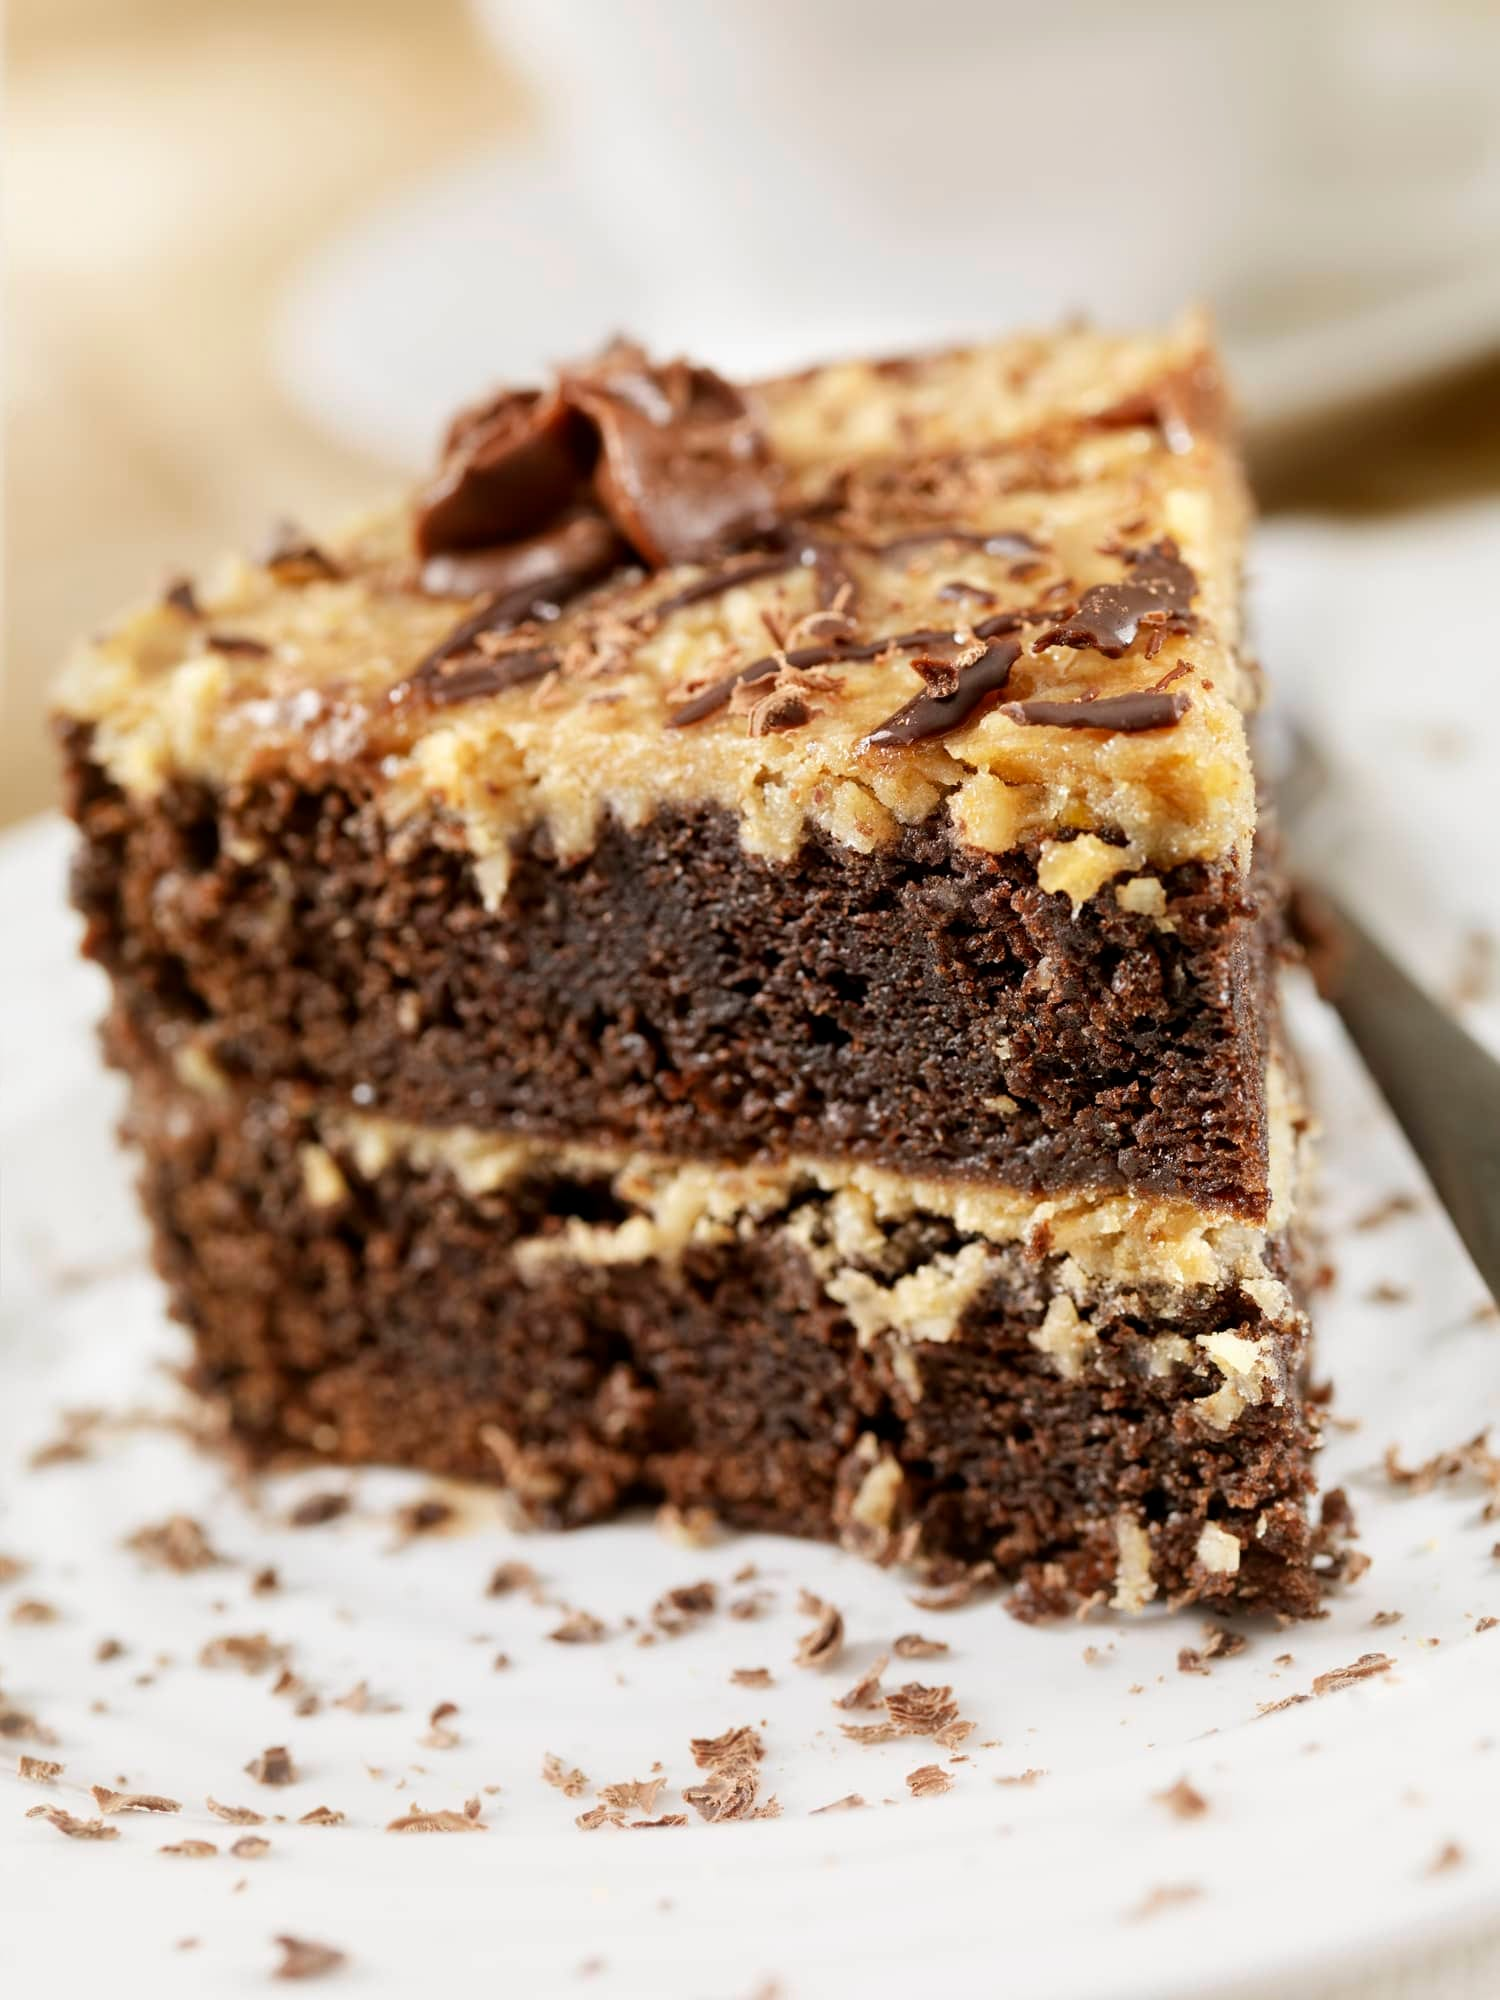 German Chocolate Cake with a Coconut Icing-Photographed on Hasselblad H1-22mb Camera